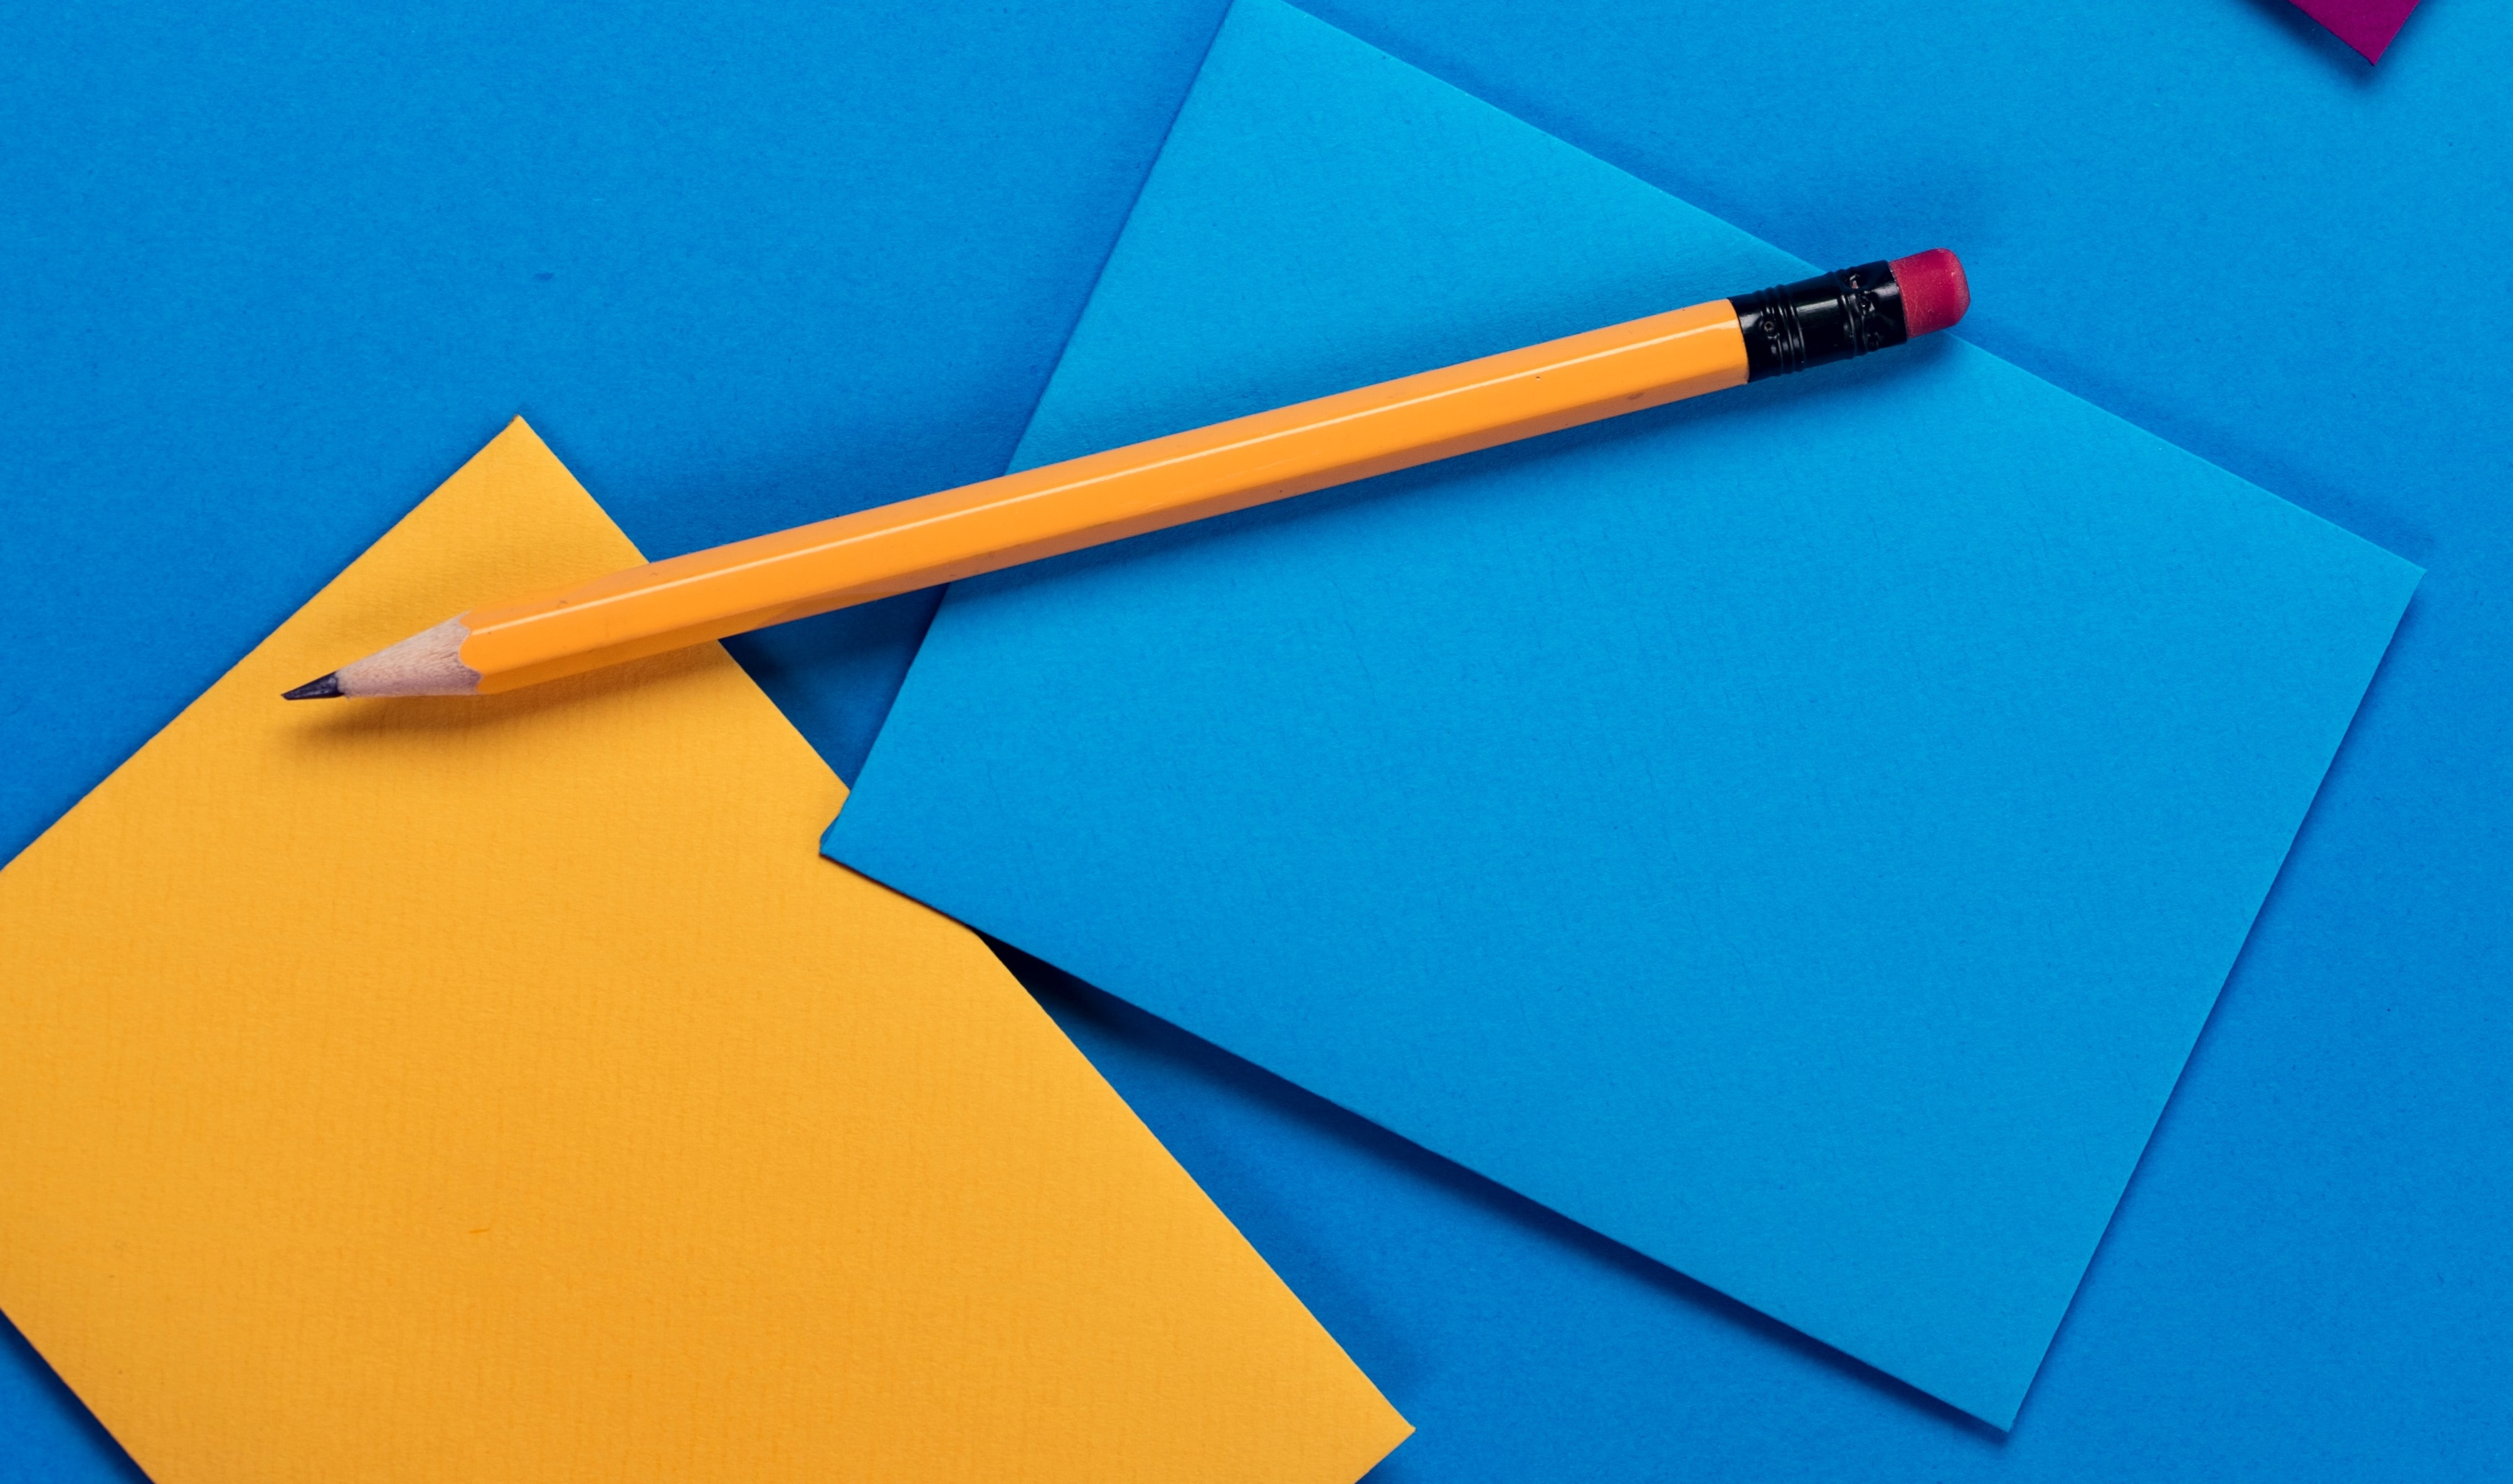 Yellow pencil with blue and yellow envelopes on a bright blue surface